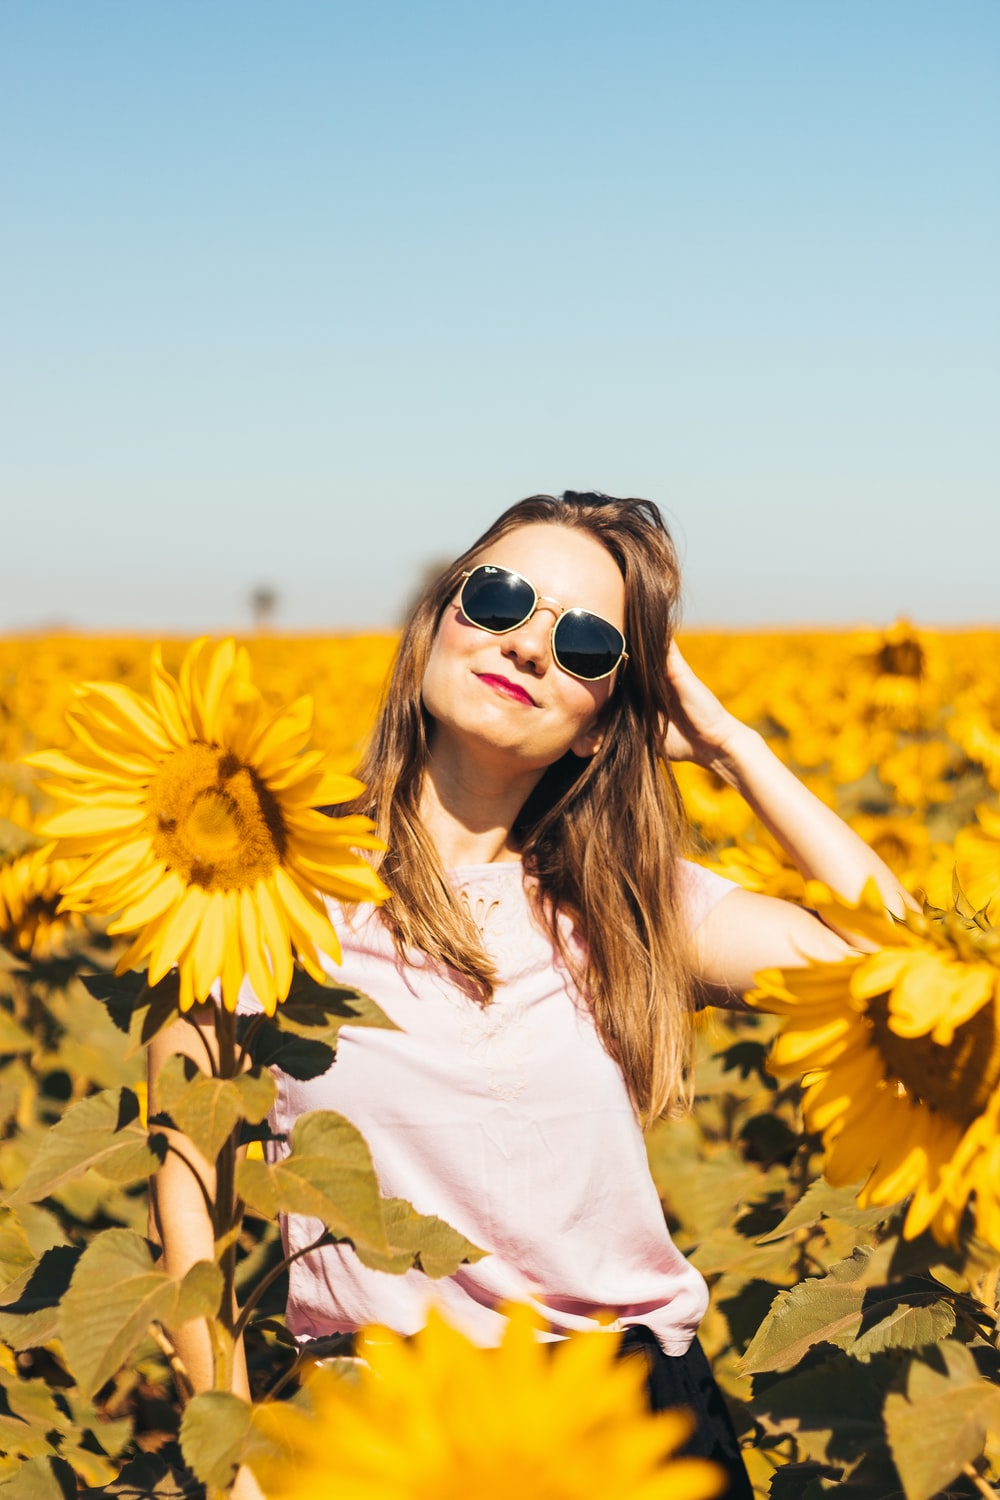 woman in white shirt standing on sunflower field during daytime